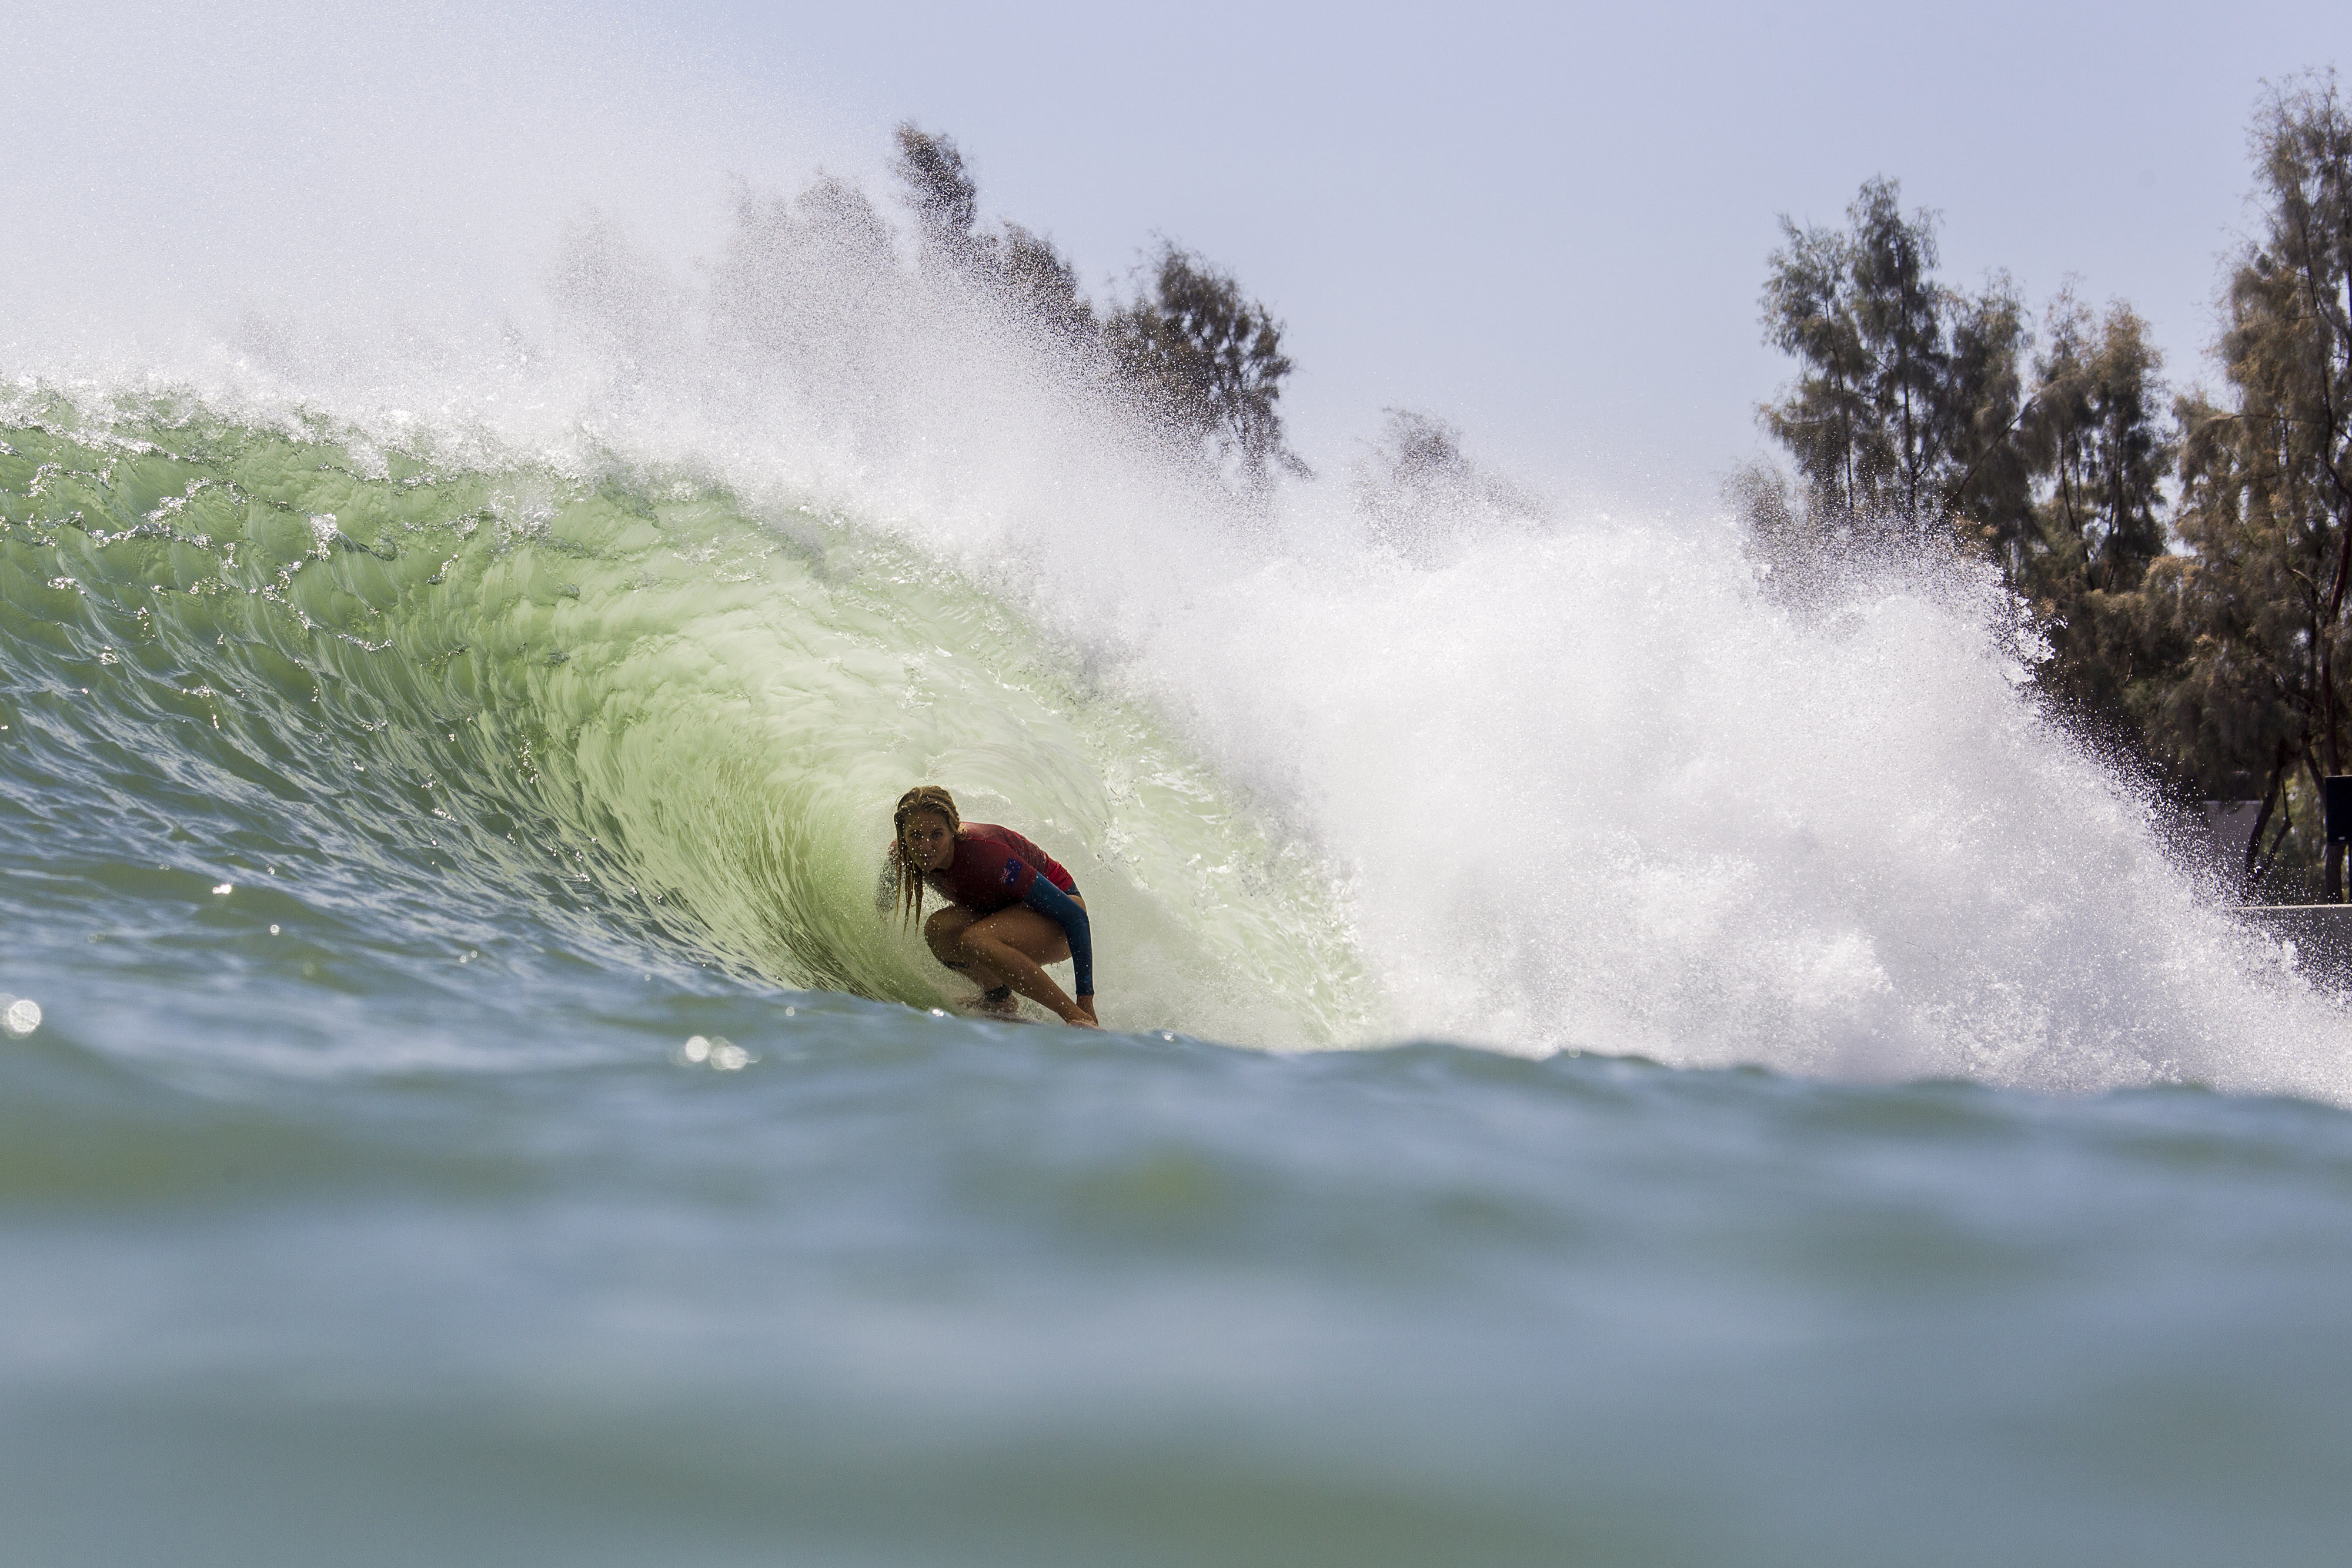 Six-time WSL Champion Stephanie Gilmore will lead Team Australia at the inaugural Founders' Cup of Surfing event at the Kelly Slater Wave Co Surf Ranch.  Credit: © WSL /  Morris